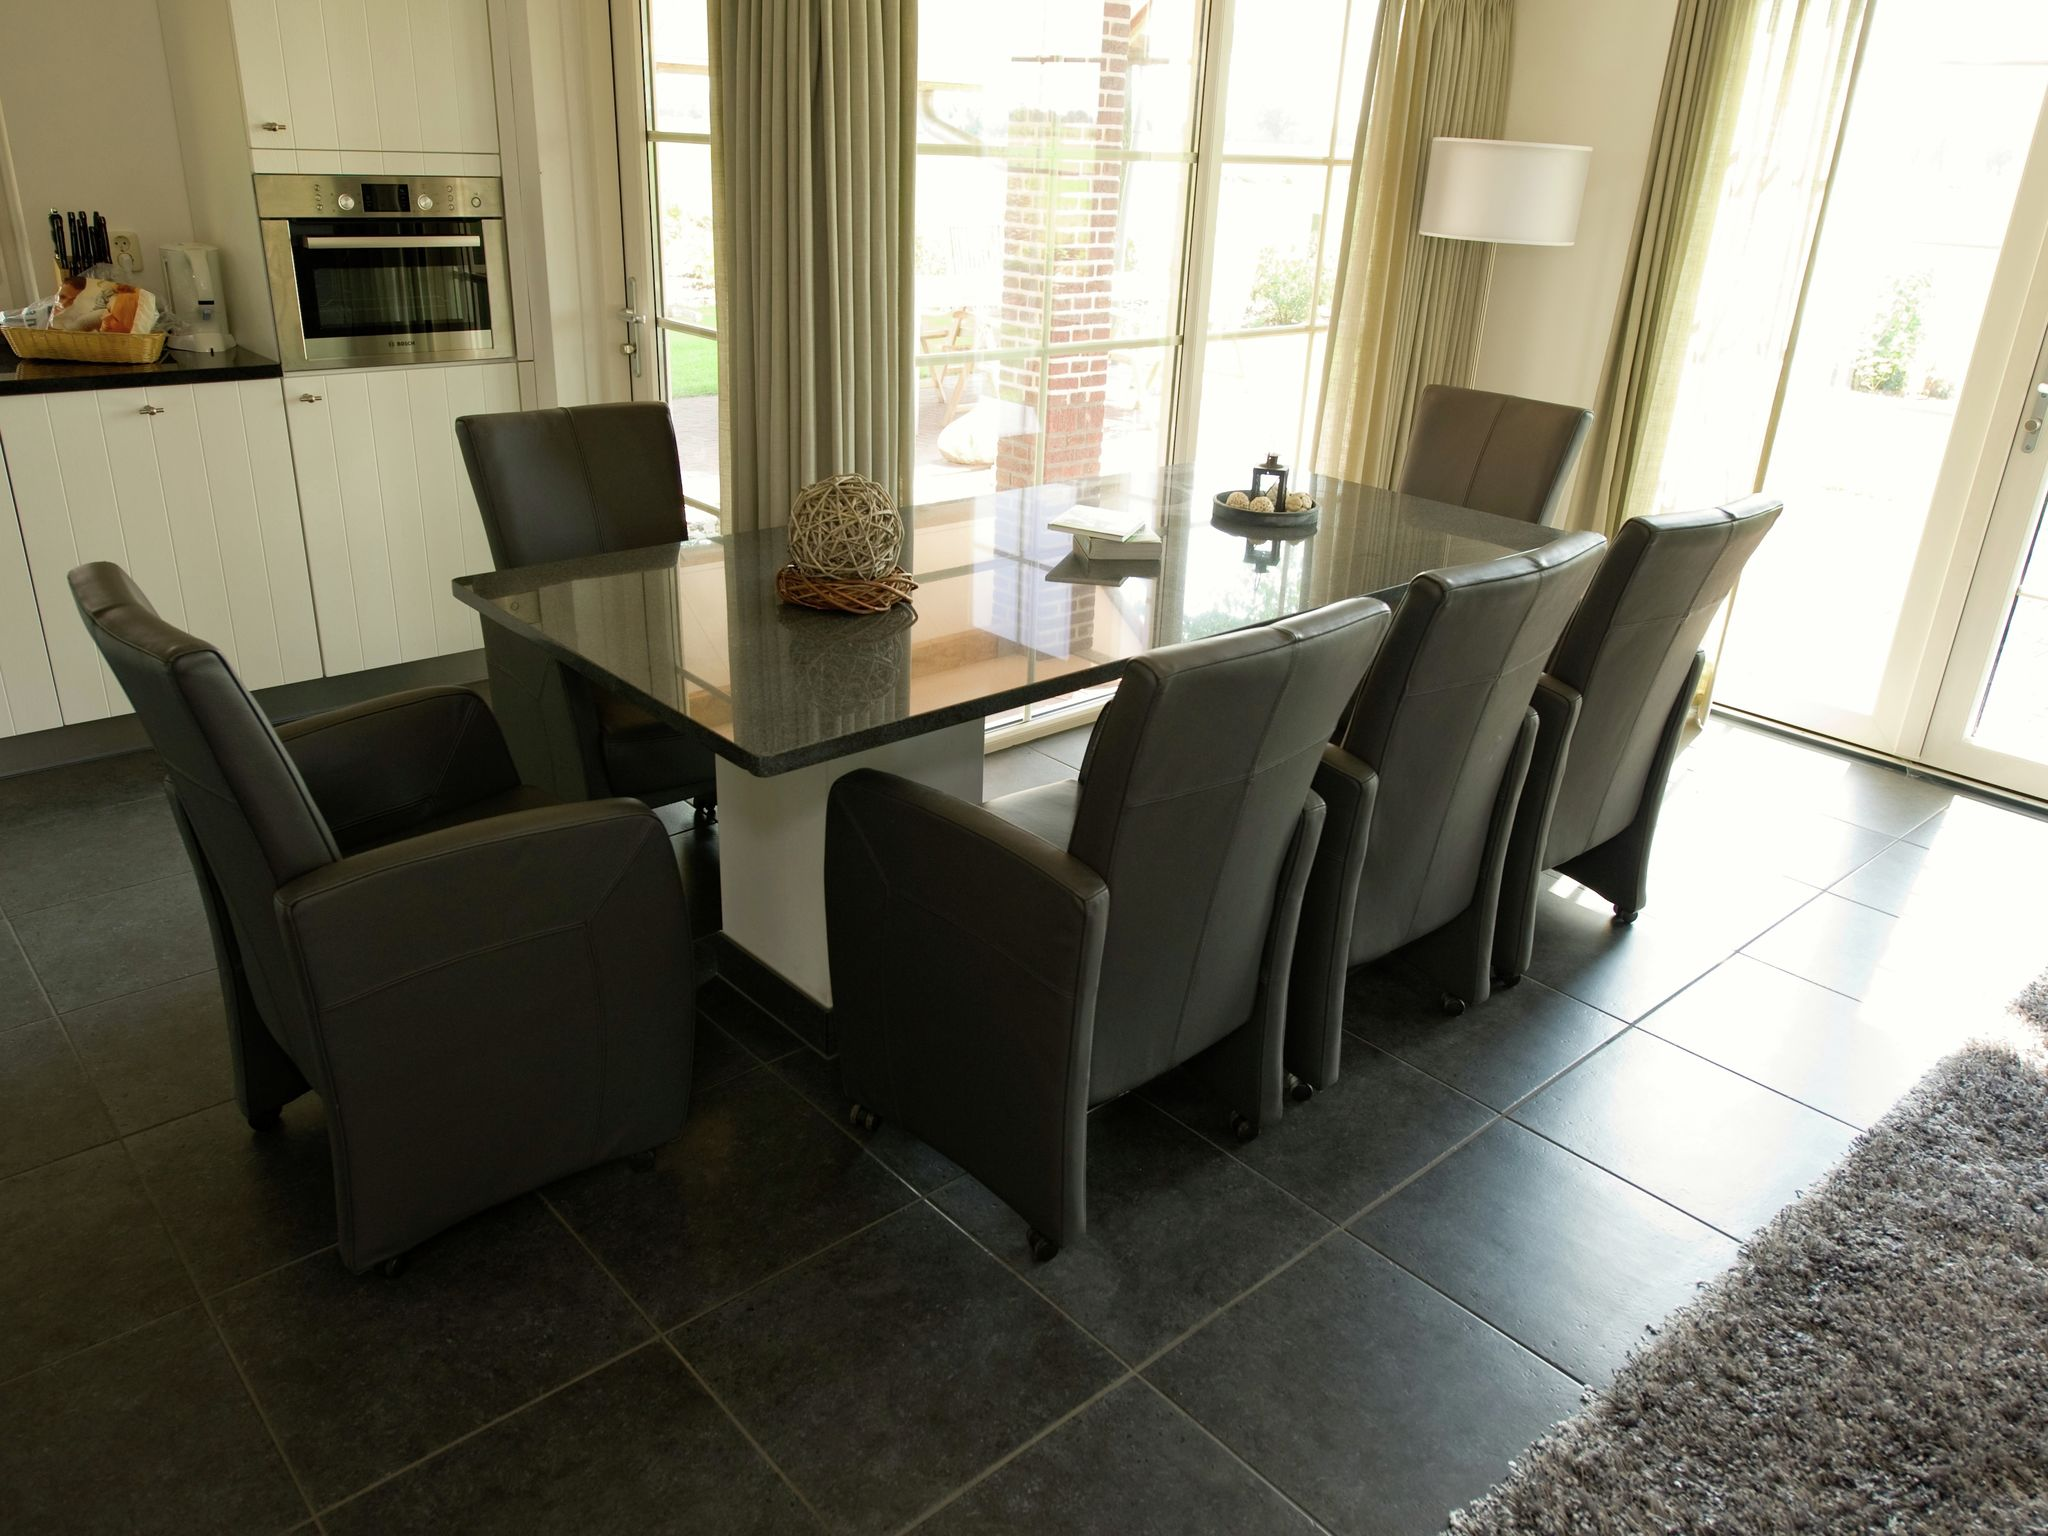 Holland | Overijssel | Holiday home Hof van Salland - Beukelaer XL wellness 6 persoons | all year | Kitchen